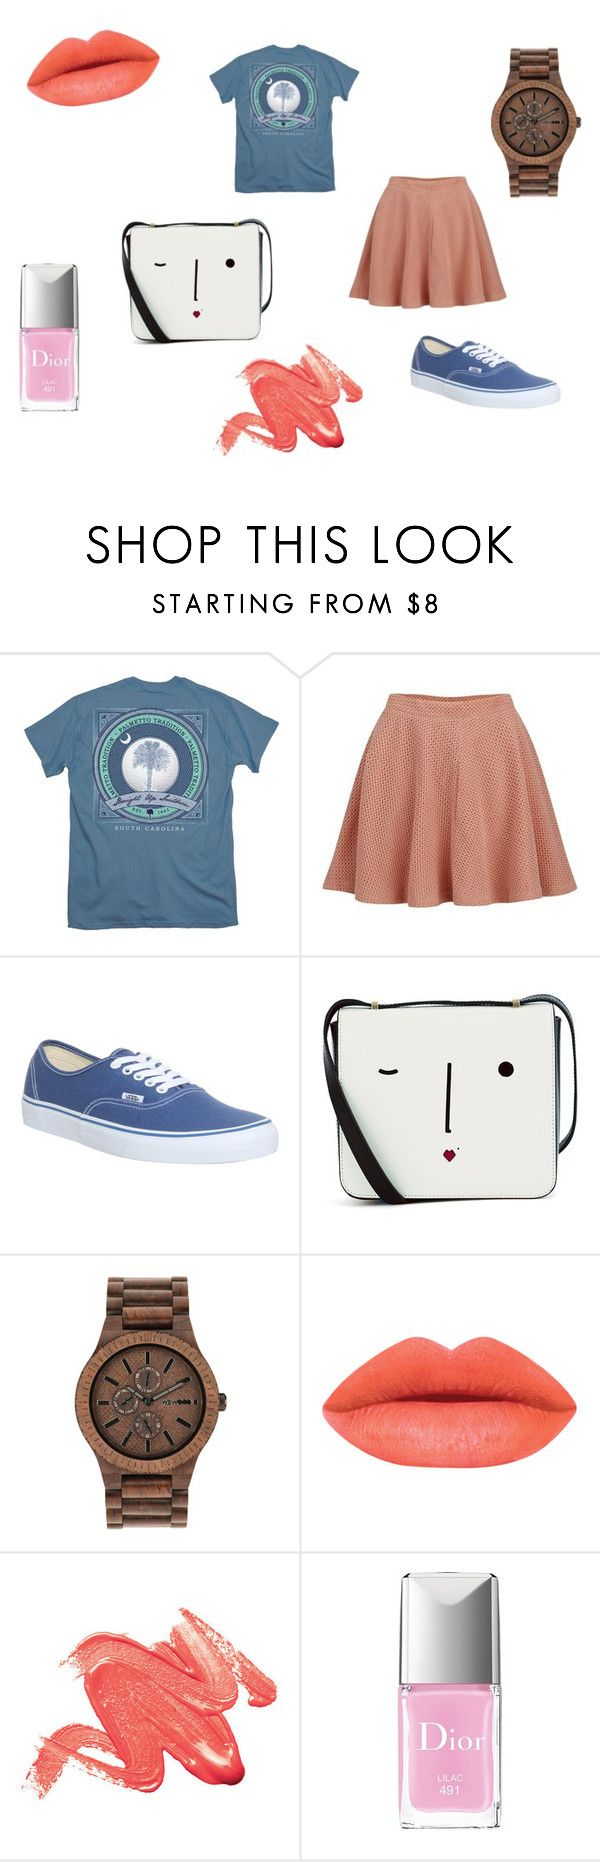 Untitled #20 by clarairawan on Polyvore featuring Paul & Joe Sister, Vans, Lulu Guinness, WeWood, Christian Dior, women's clothing, women's fashion, women, female and woman